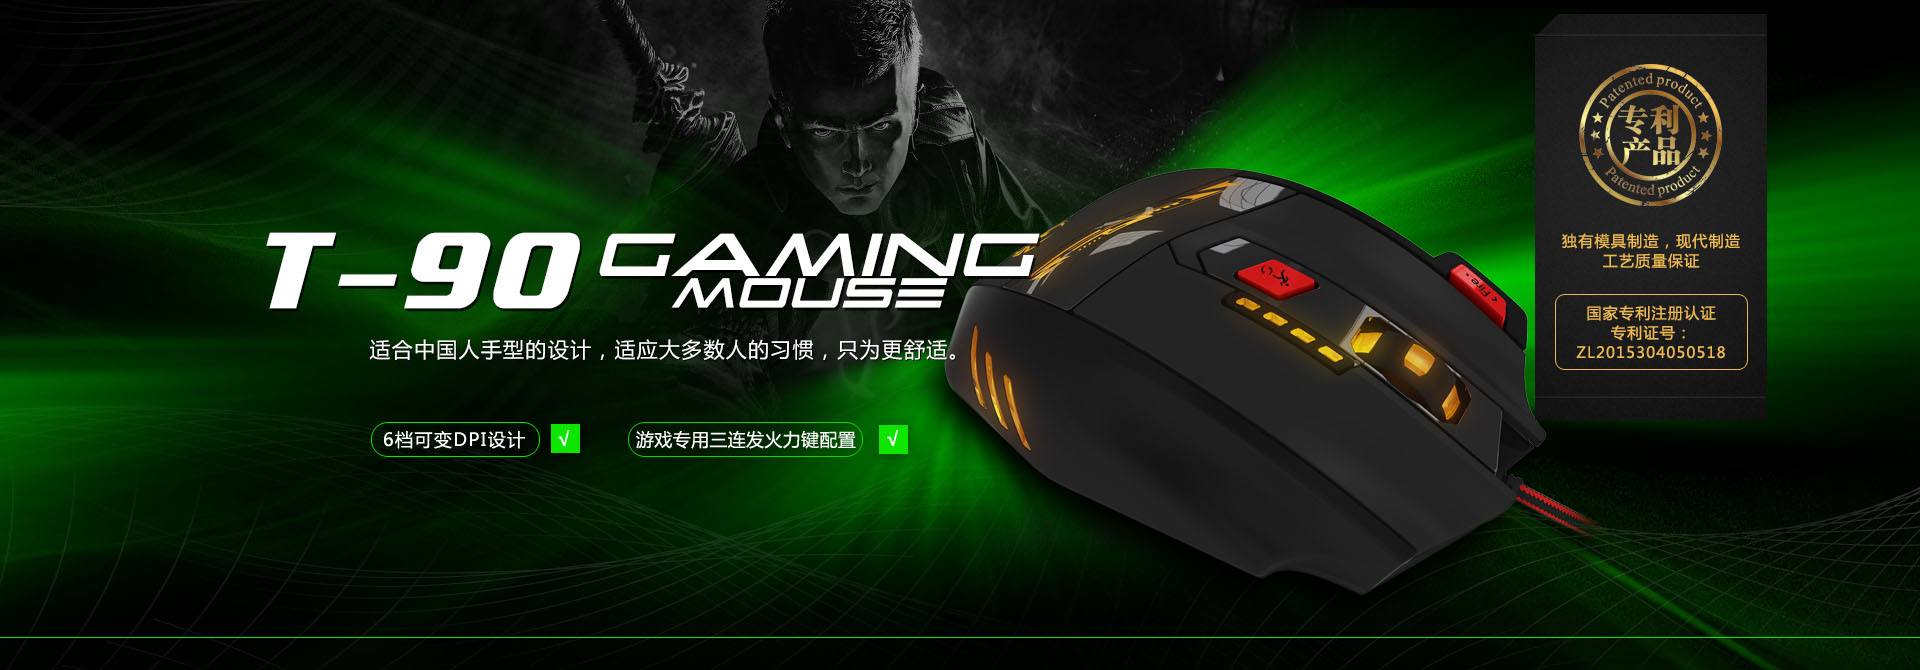 zelotes t80 mouse driver download